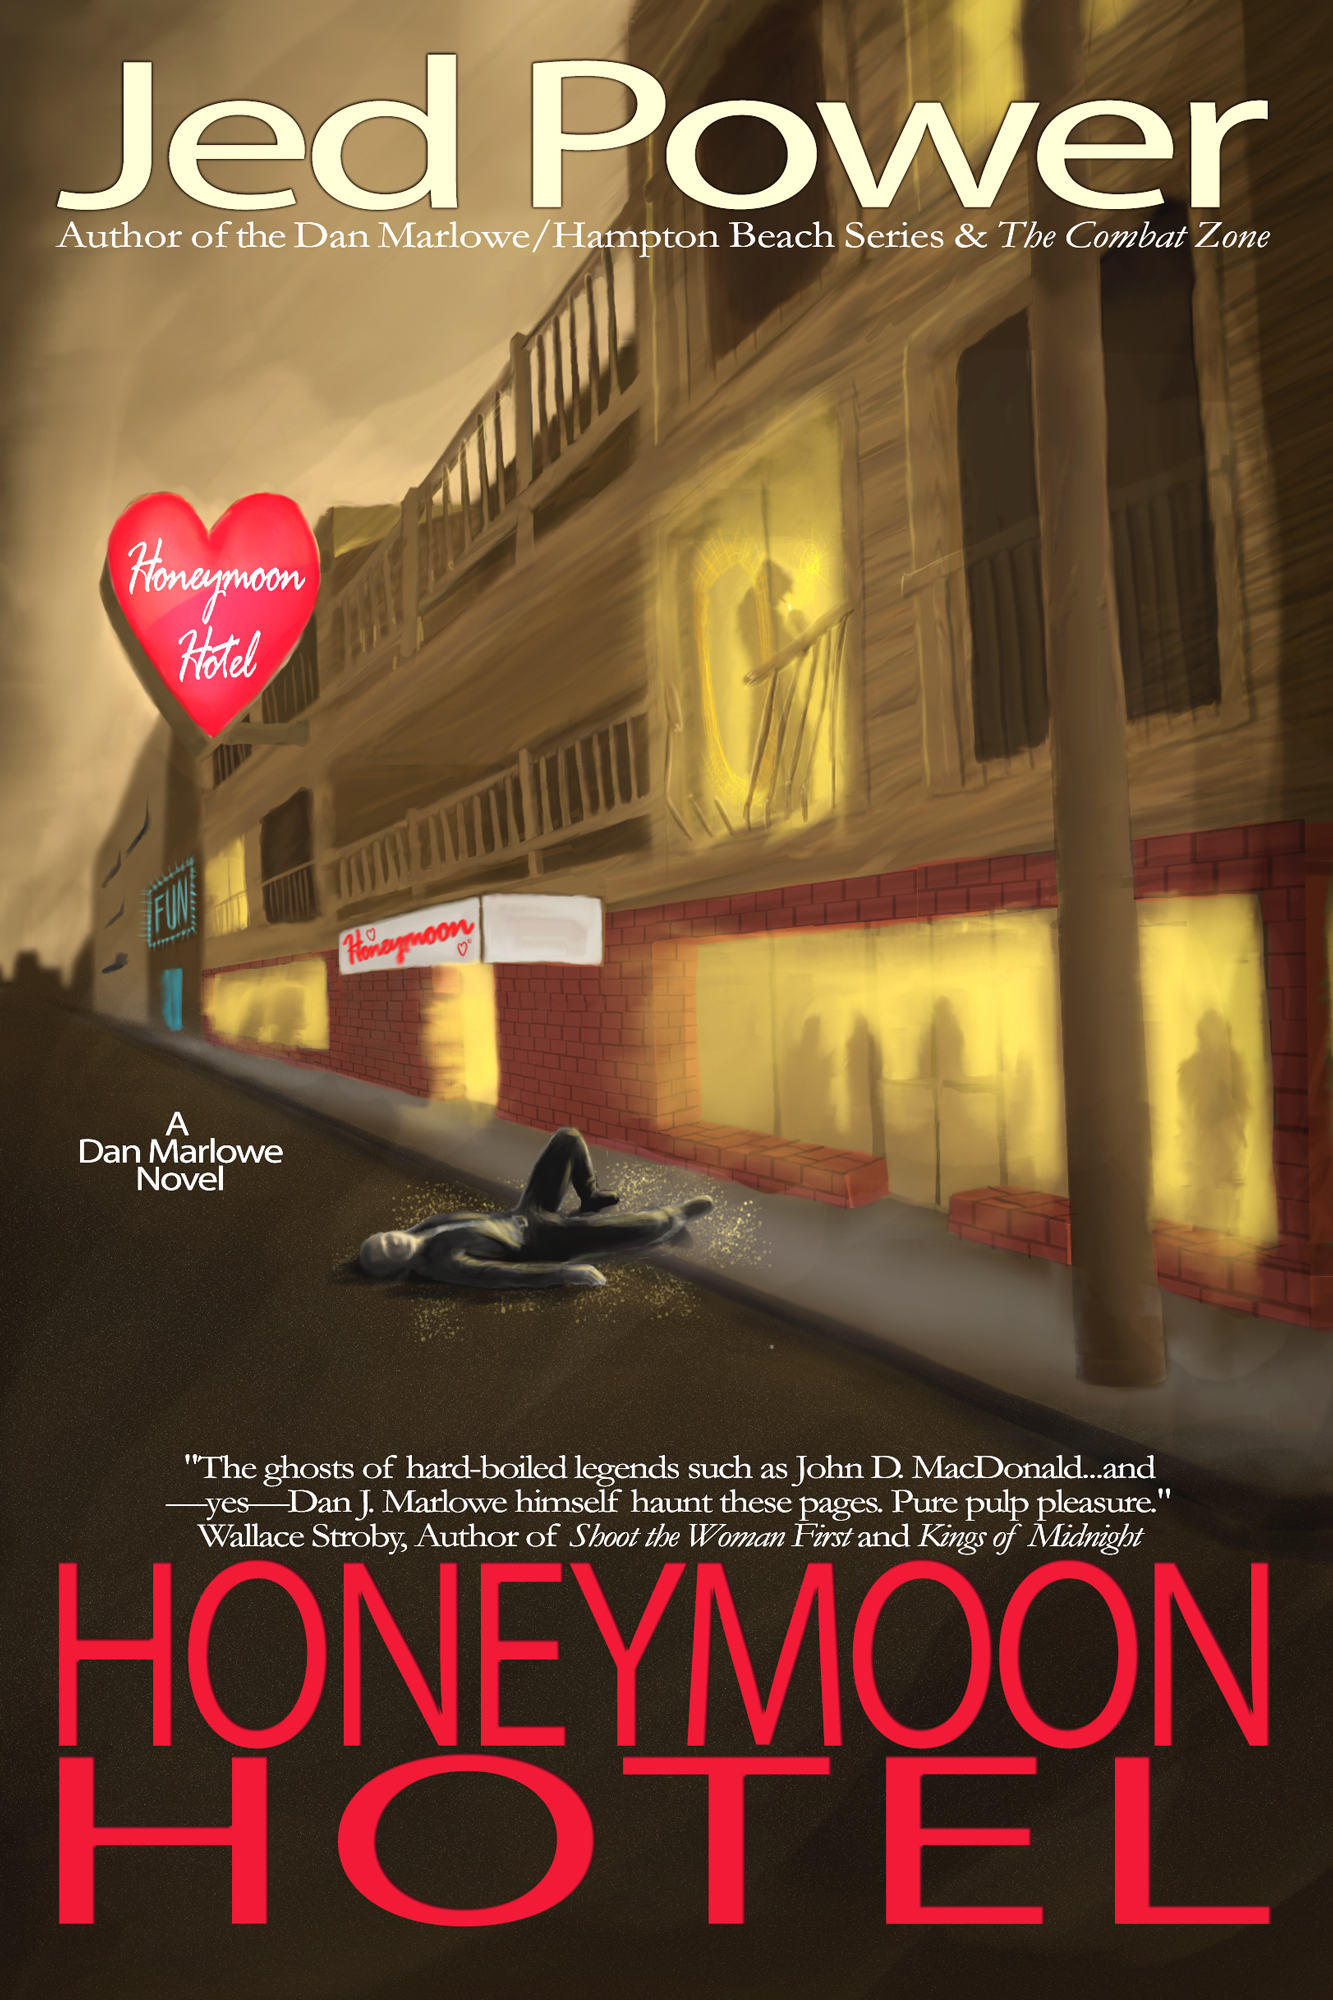 Honeymoon Hotel: A Dan Marlowe Novel (Book 4)